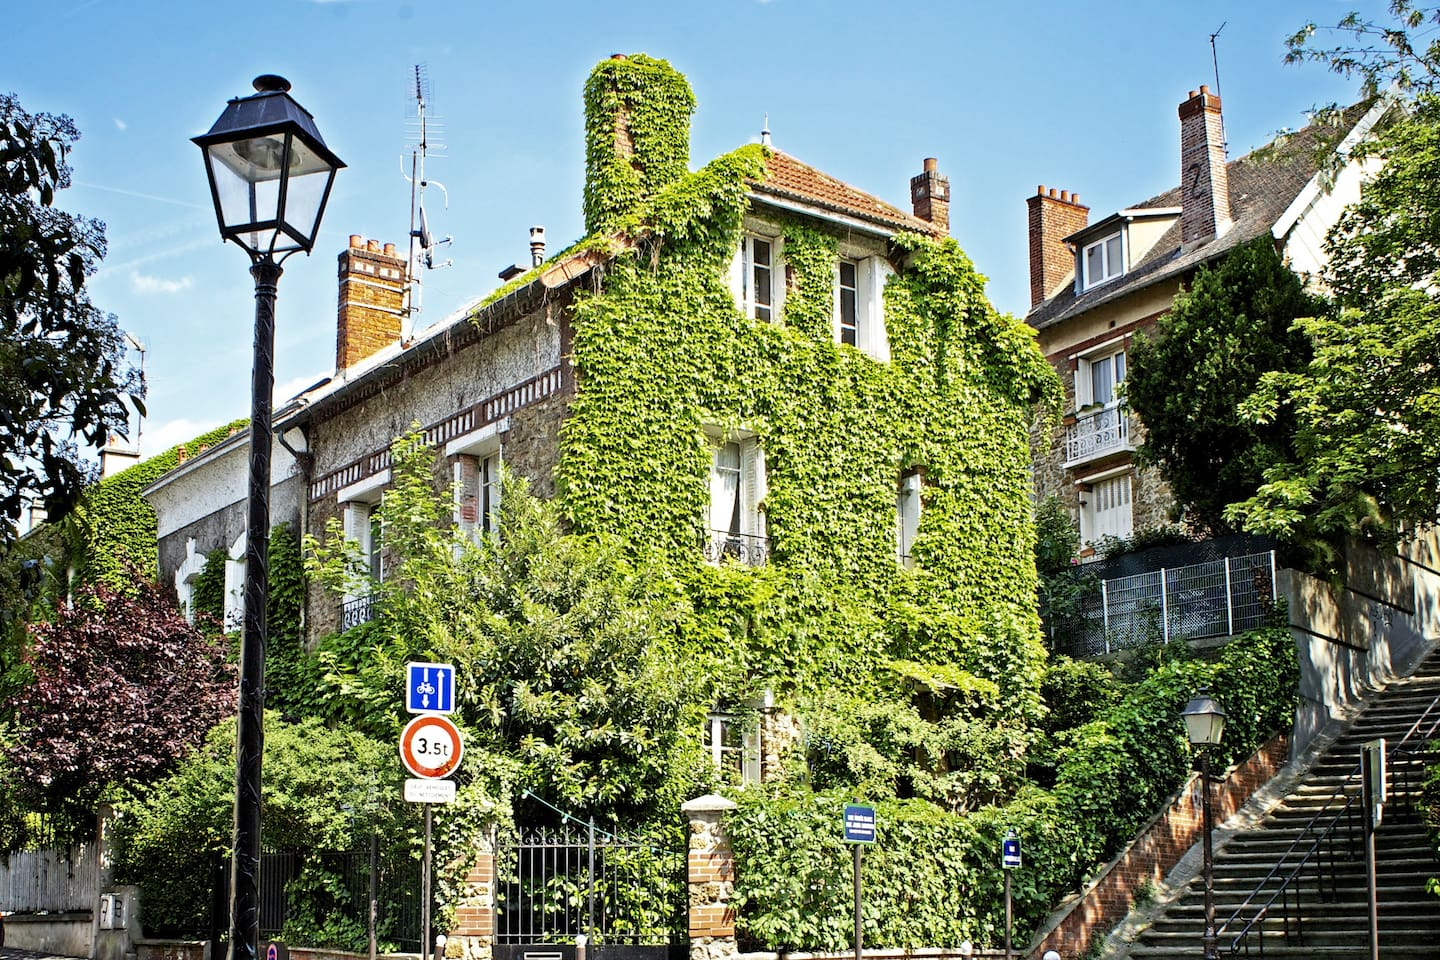 Lovely House with Garden (room N°3)